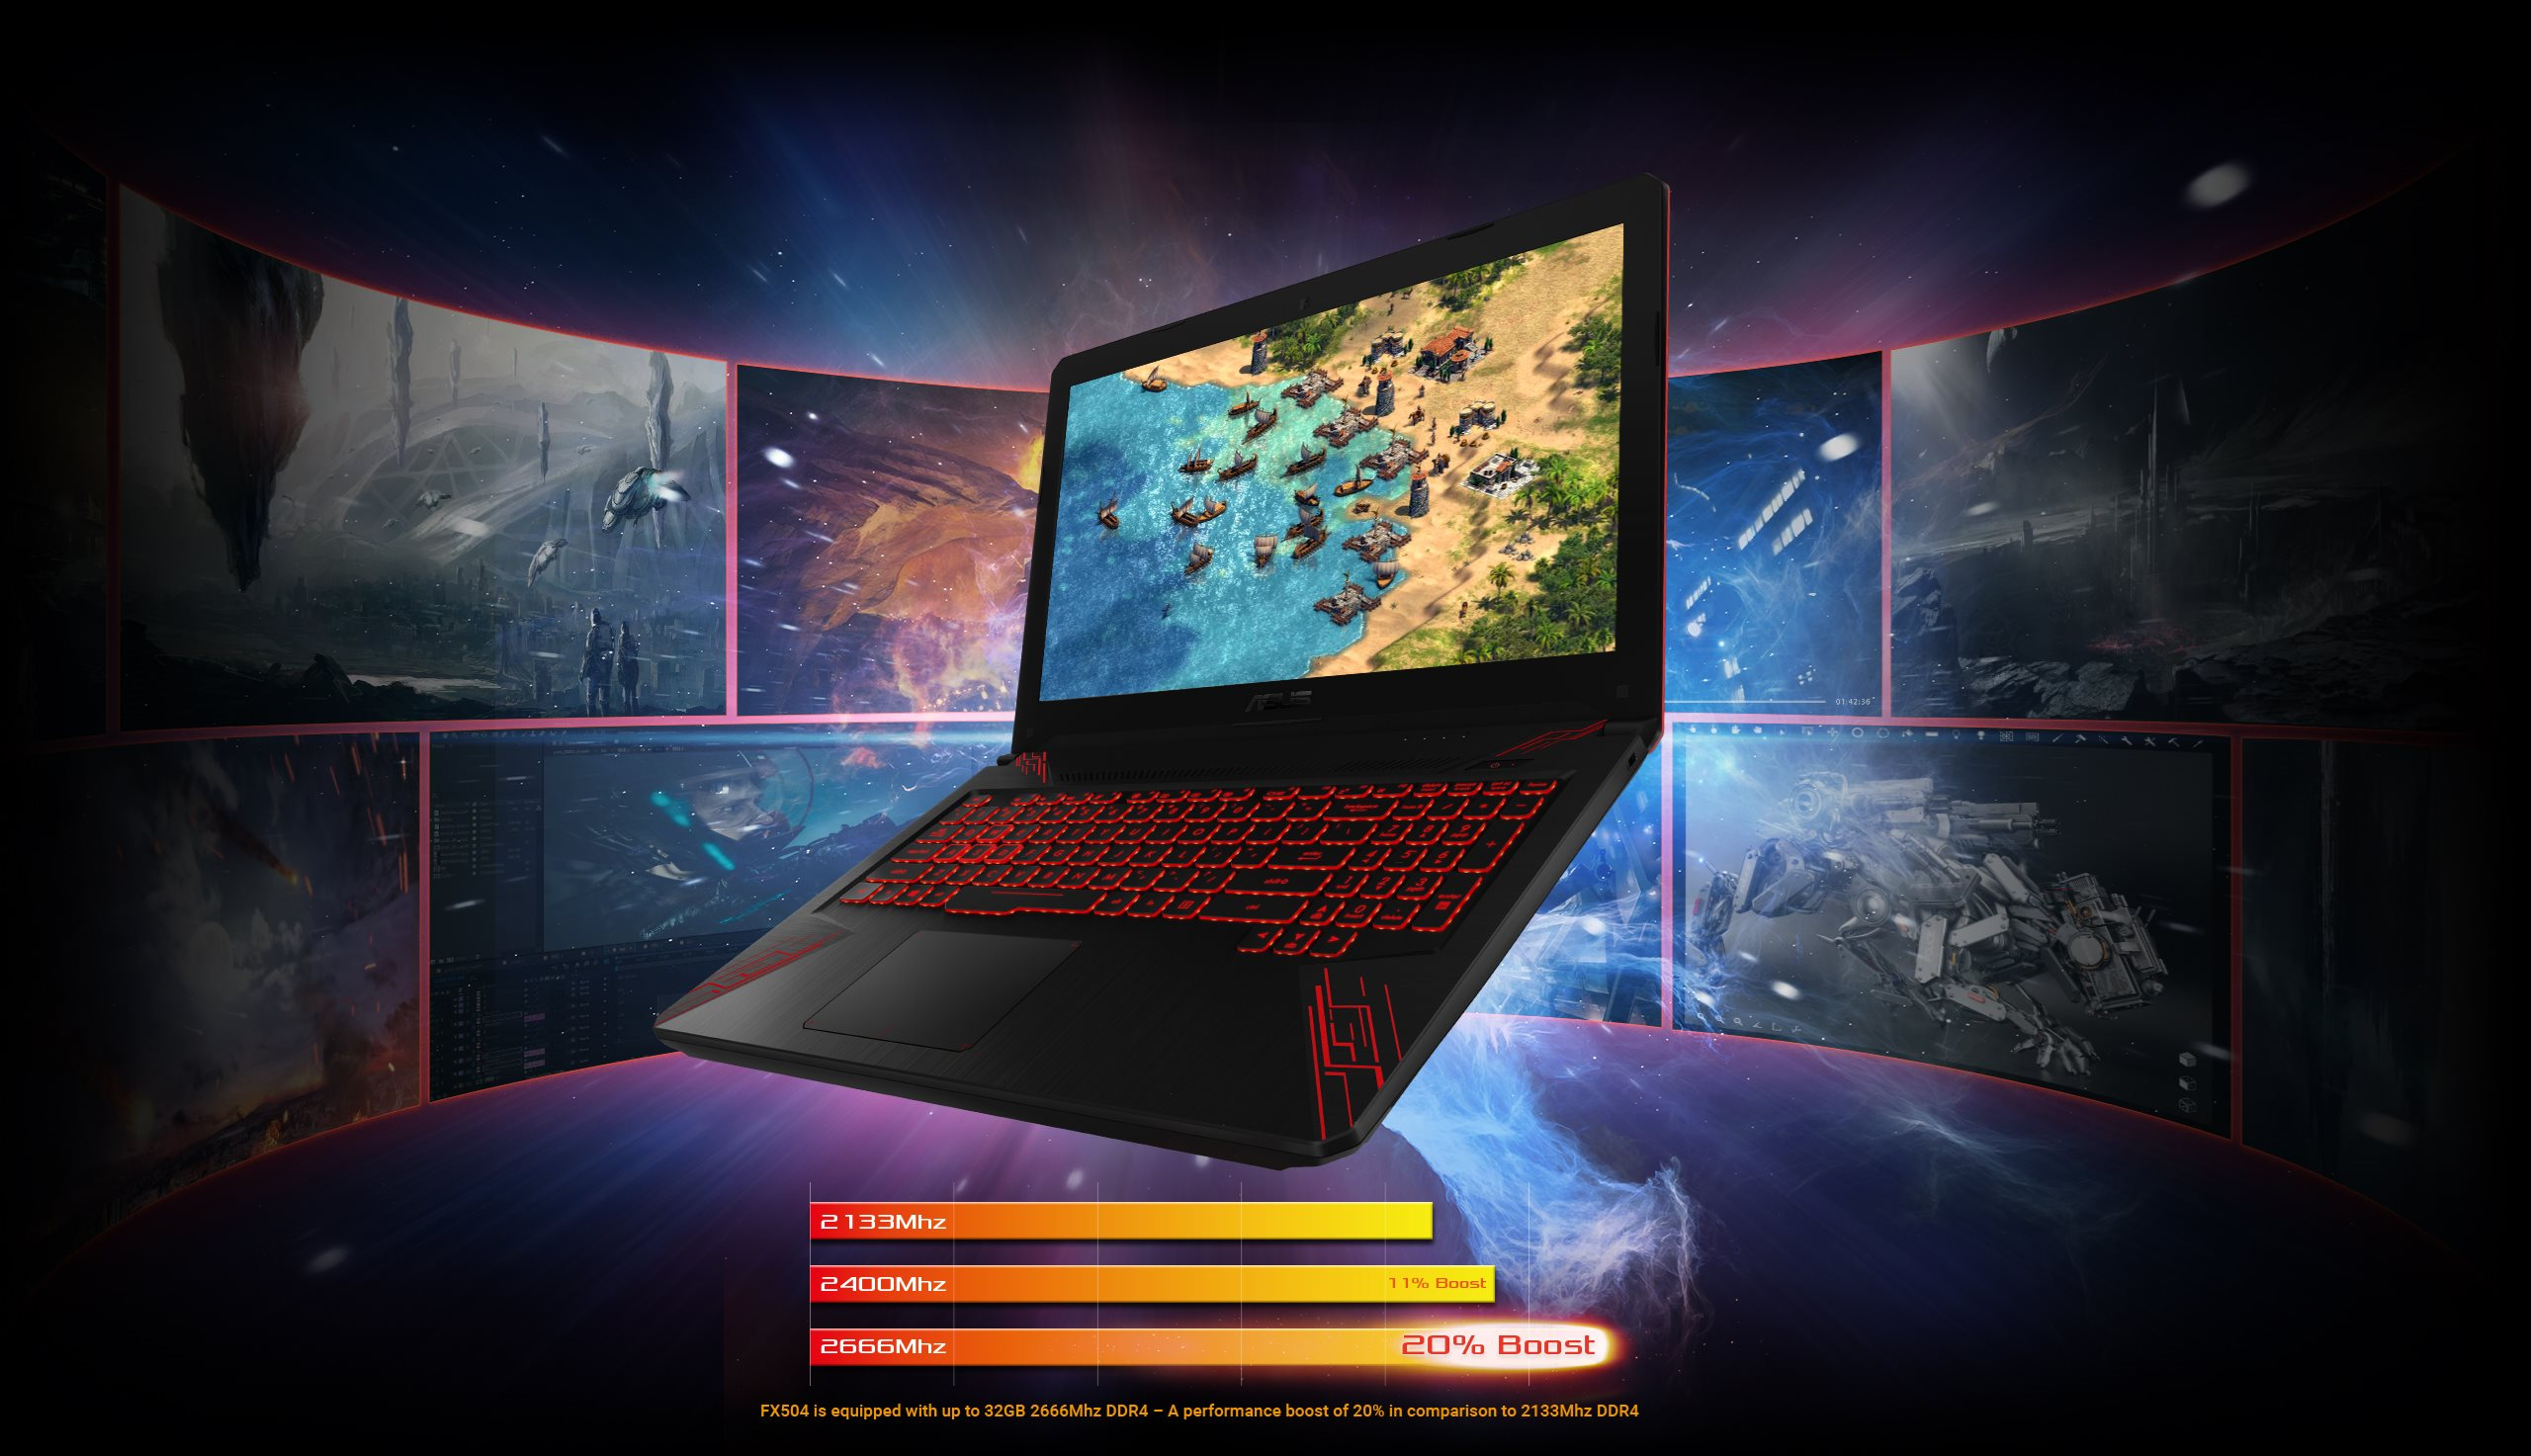 ASUS FX504GD-NH51 TUF Gaming Laptop, Intel Core i5-8300H 2 3GHz Quad Core  Processor, 8GB Memory, 256GB SDD, NVIDIA GeForce GTX